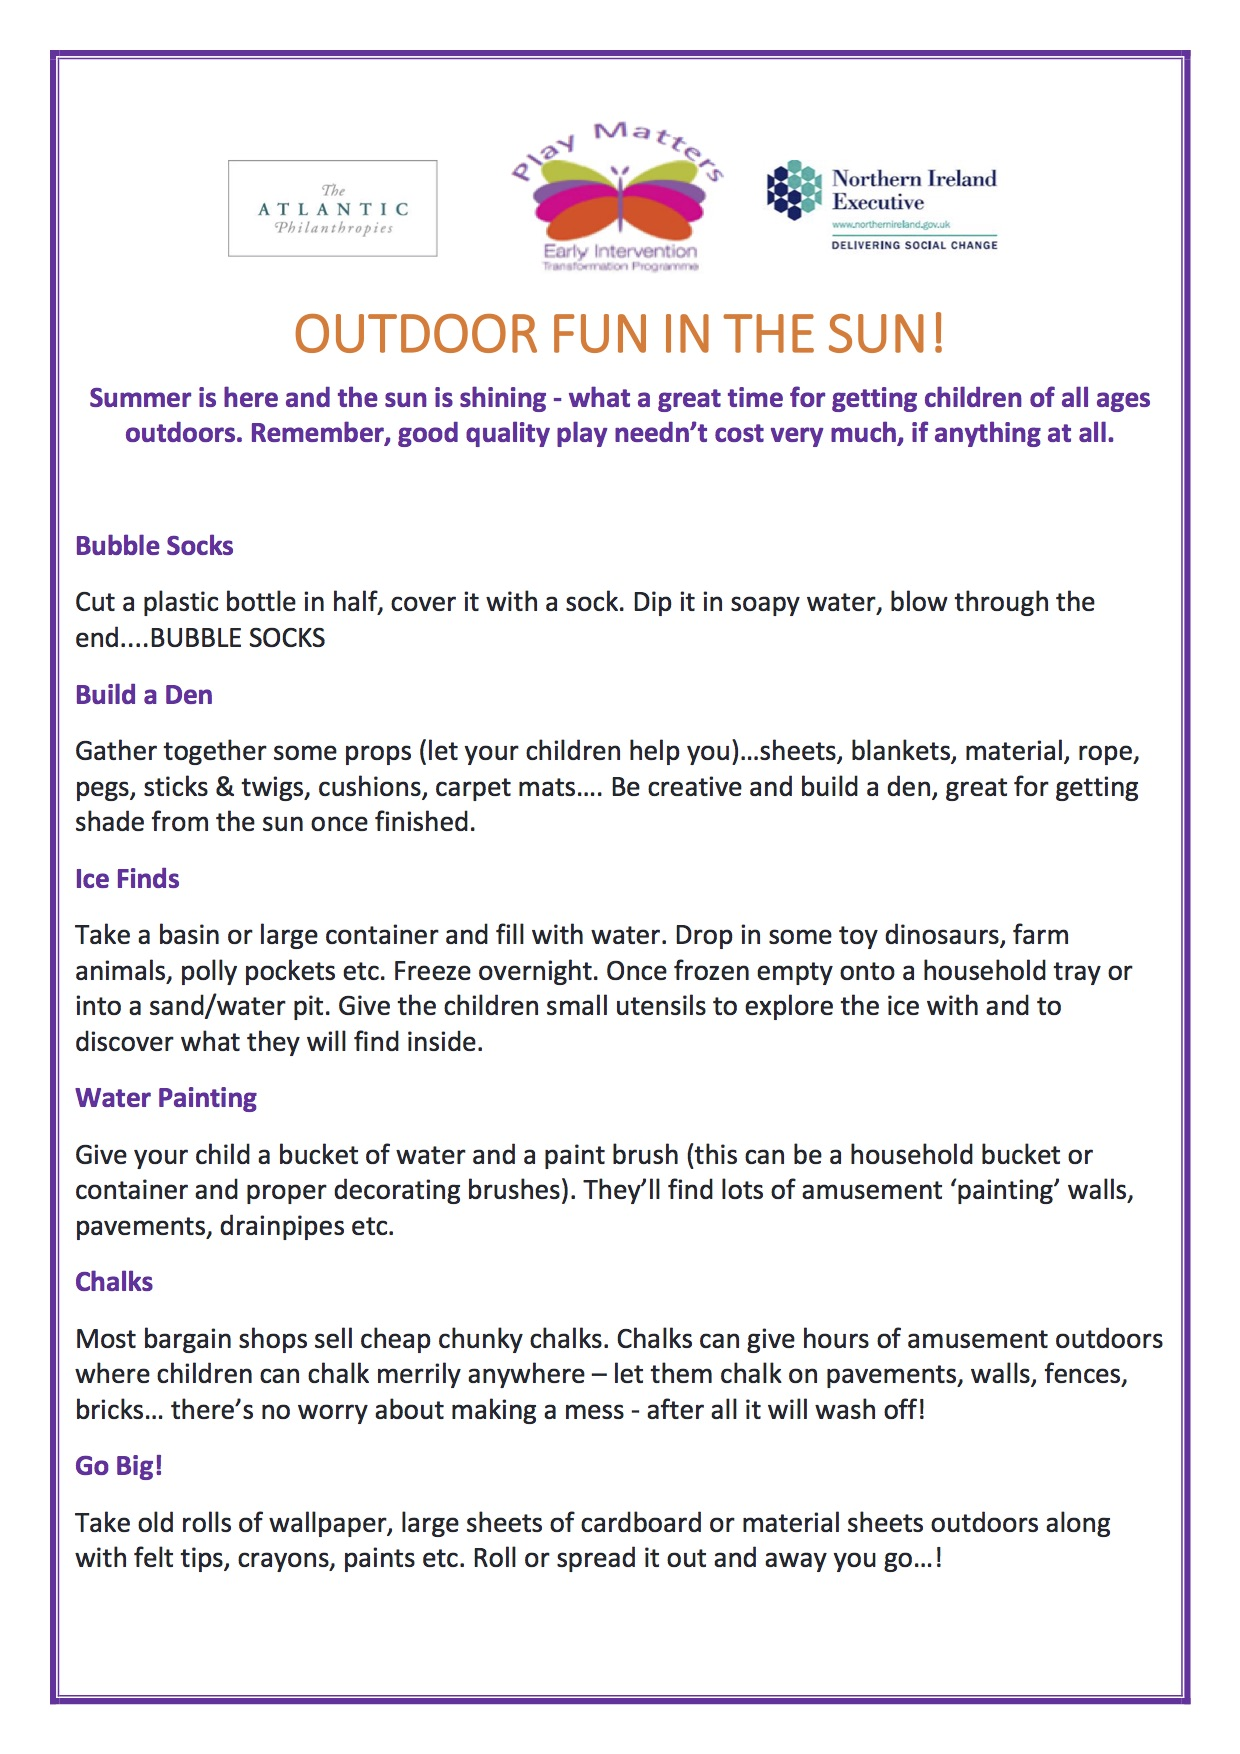 OUTDOOR FUN IN THE SUN - PLAY MATTERS page 1.